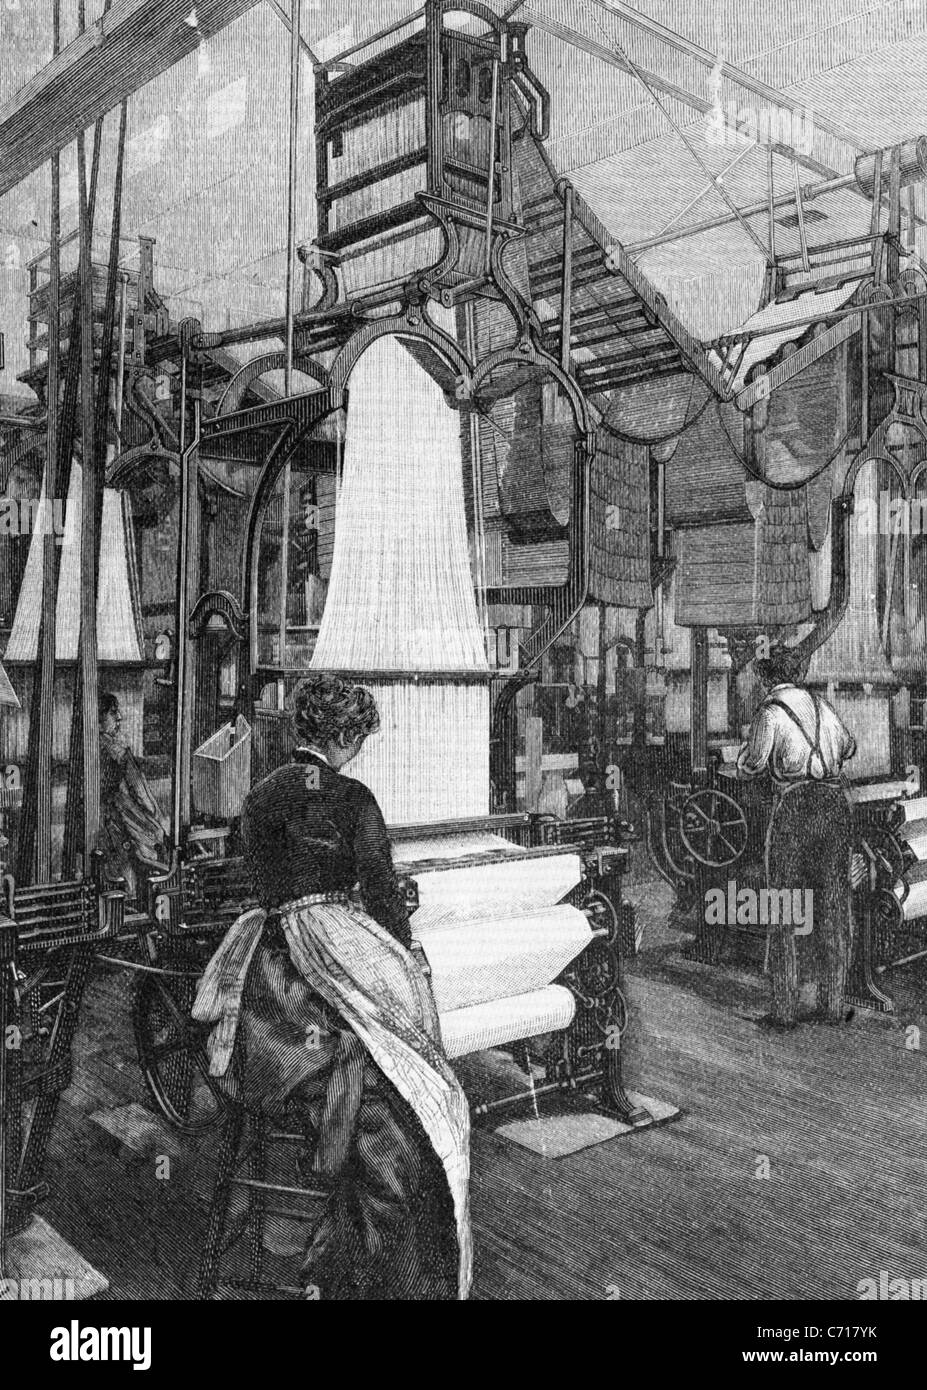 POWER LOOM WEAVING in England in the 1850s - Stock Image